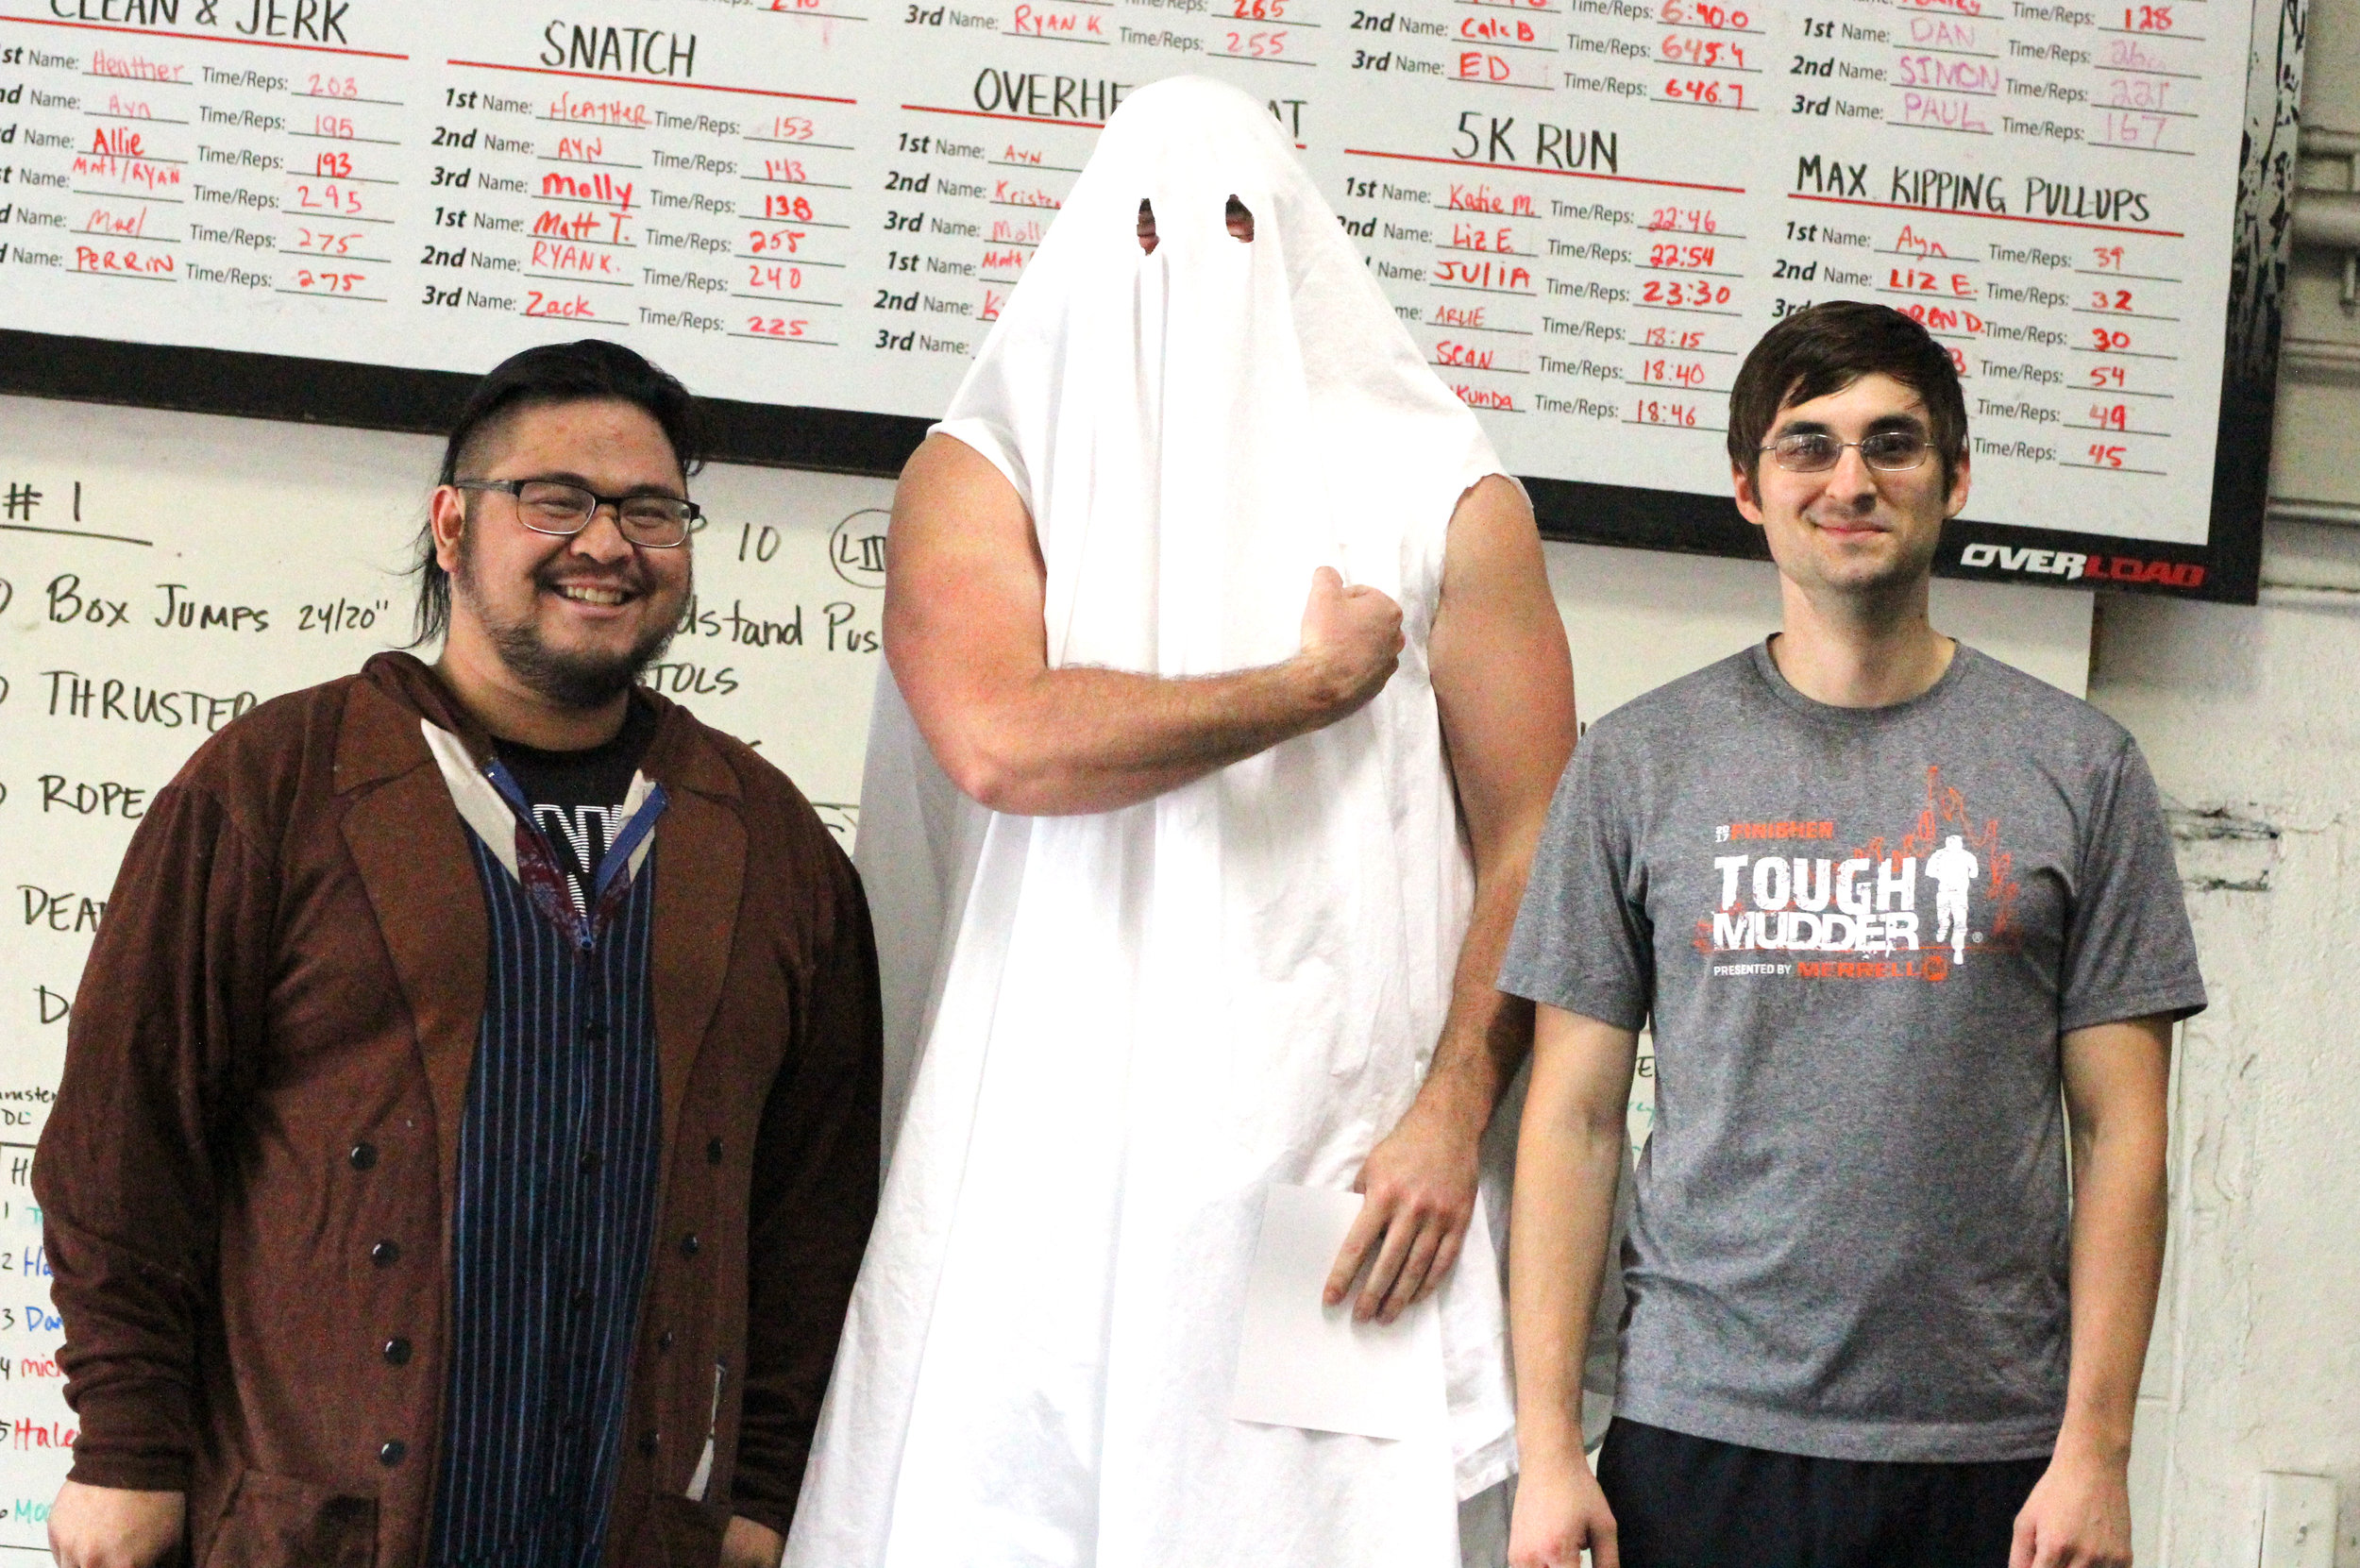 Congratulations to all of our Halloween Throwdown Competitors! It was such a fun and spooooky event! Pictured: Bueno, Trey, and Tom!